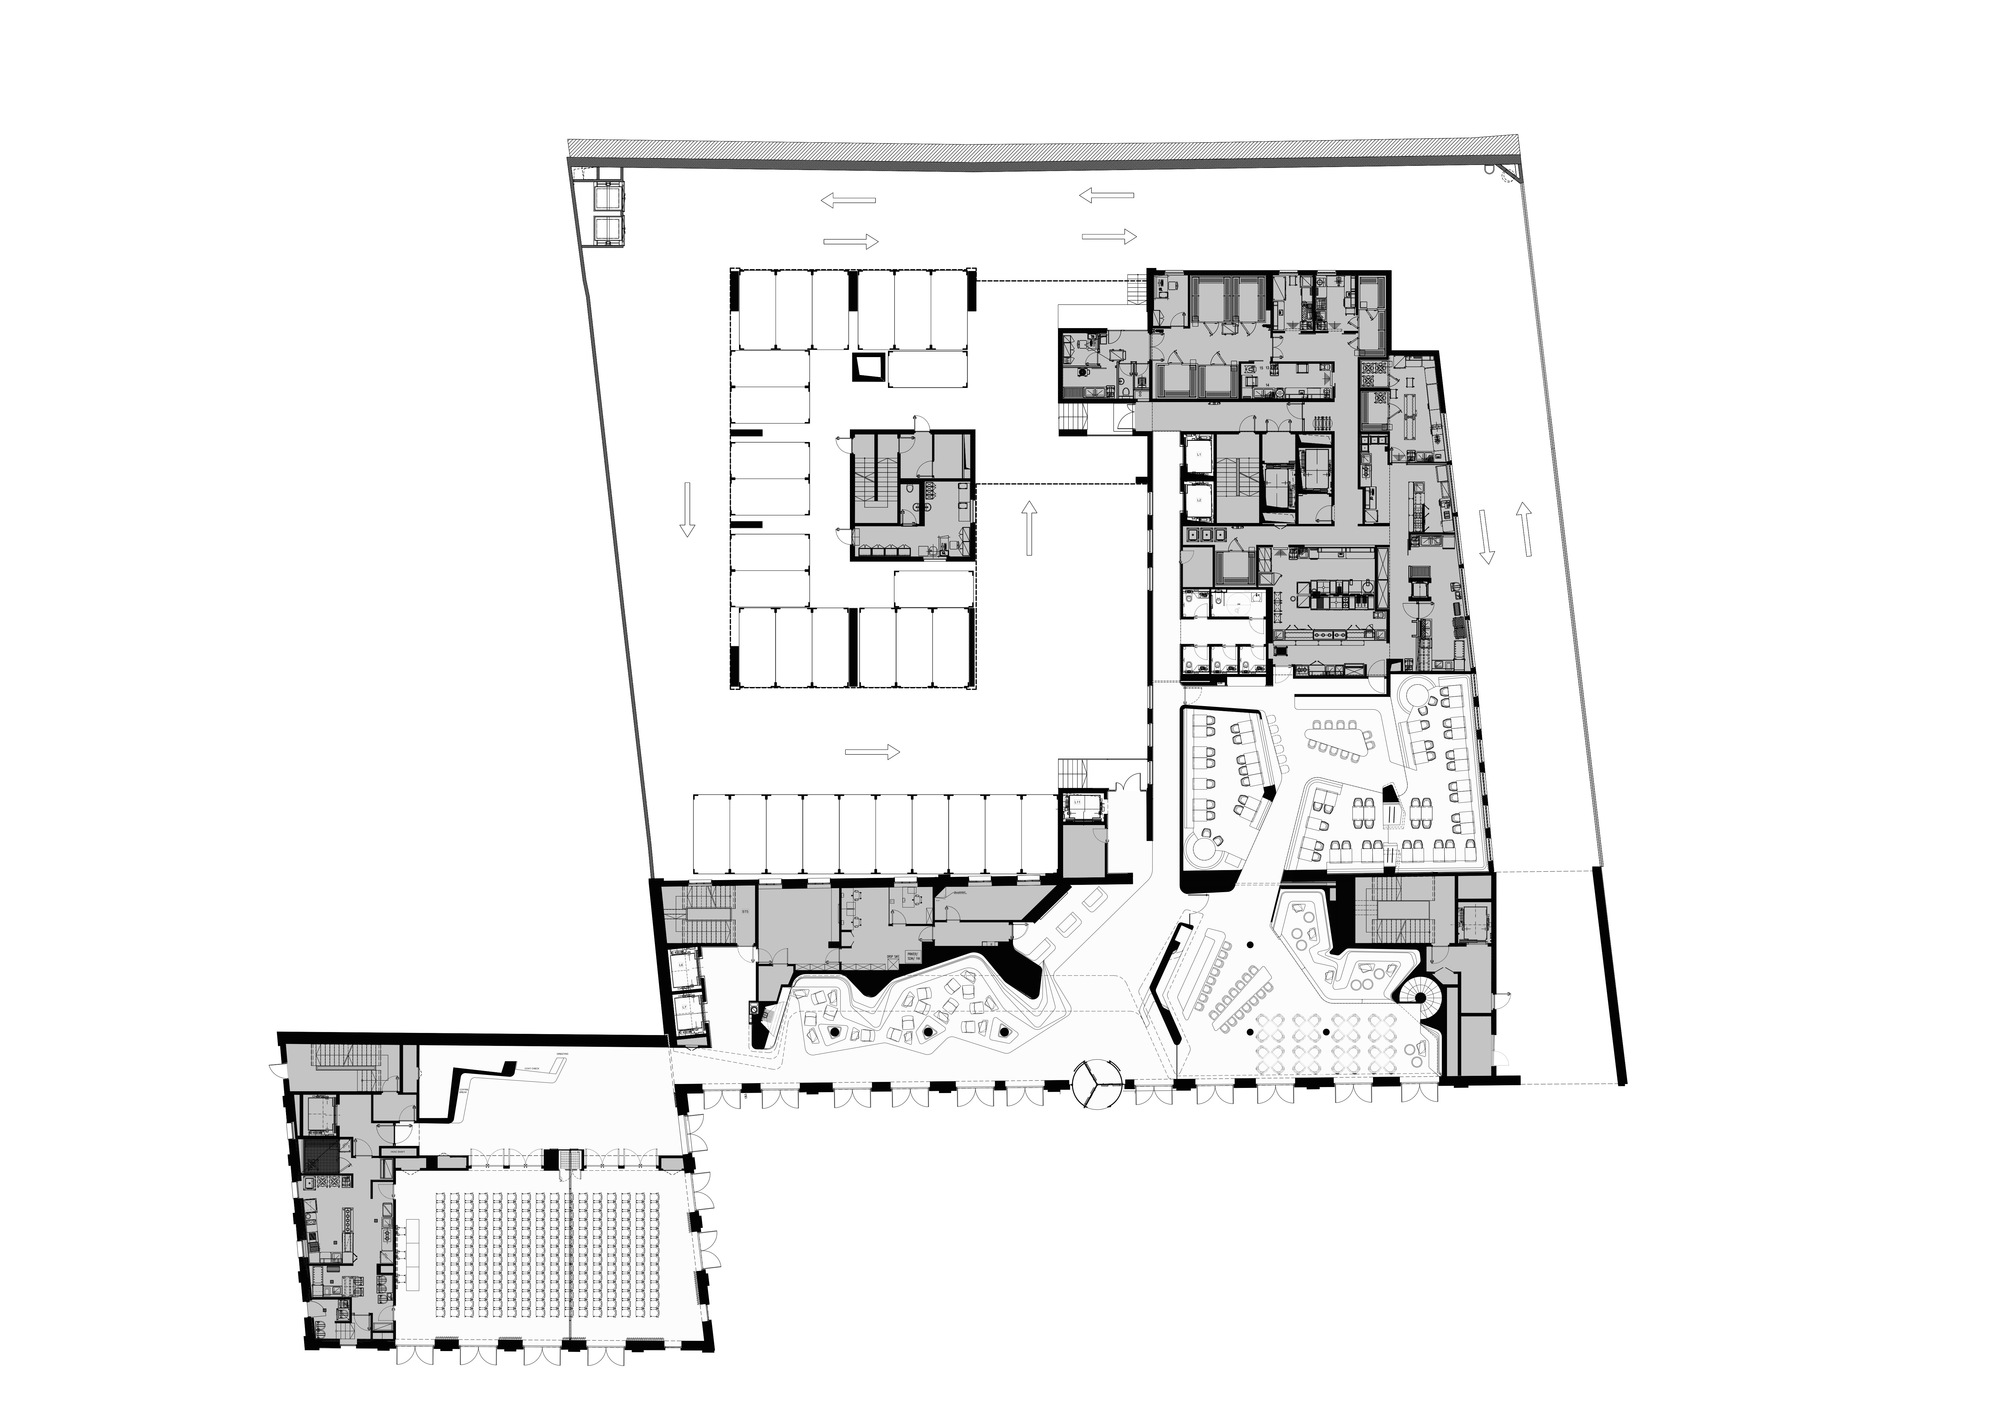 Studio Floor Plans Awesome Studio Apartment Floor Plans moreover Plan For 22 Feet By 42 Feet Plot  Plot Size 103 Square Yards  Plan Code 1328 further 653997 Two story 4 bedroom 2C 3 5 bath french style house plan likewise 23 Thumb furthermore Imagining0922. on apartment complex plans